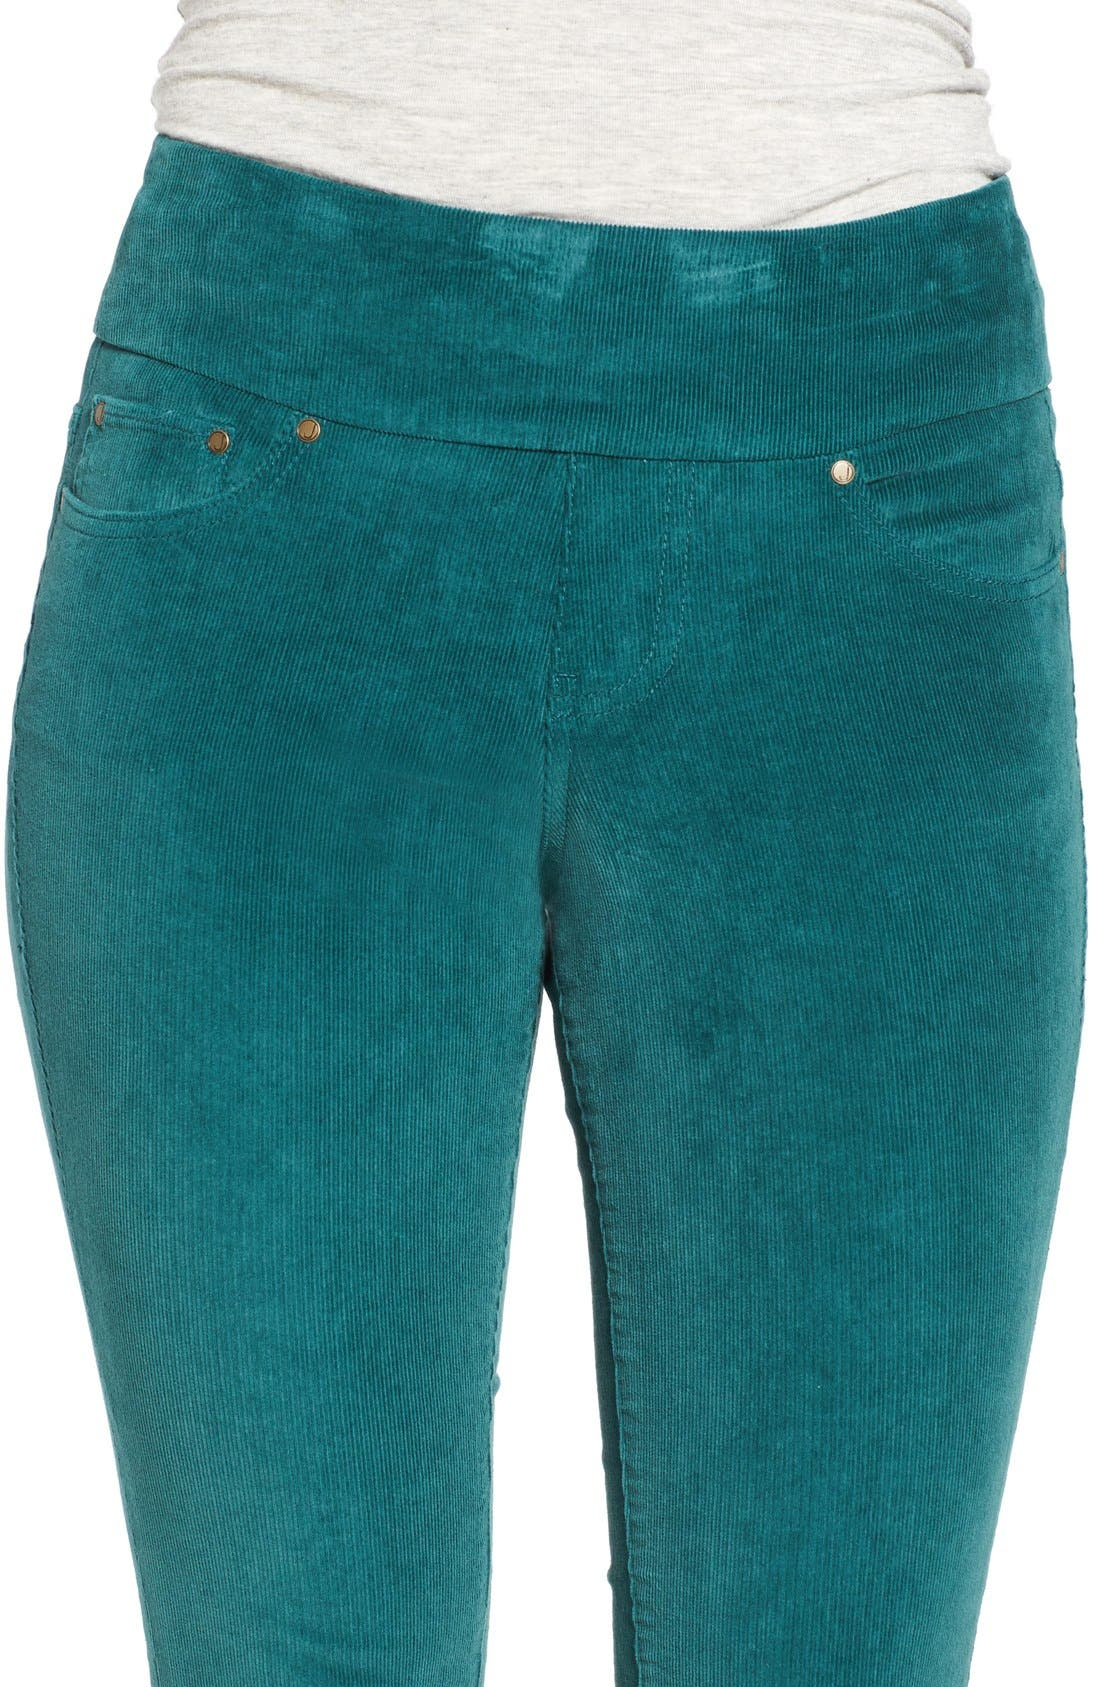 Alternate Image 4  - Jag Jeans Nora Pull-On Stretch Skinny Corduroy Pants (Regular & Petite)